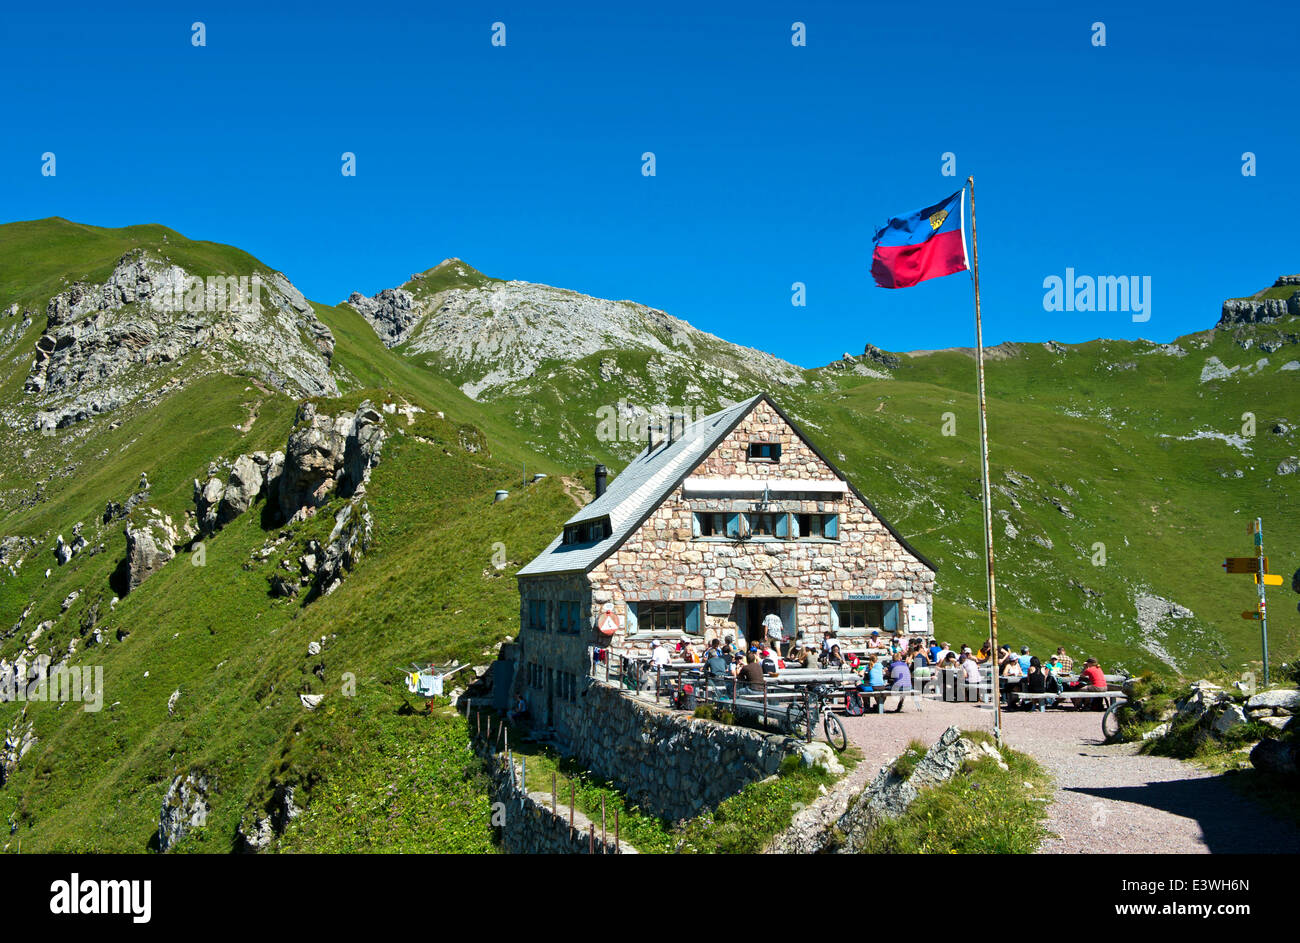 Pfälzerhütte, mountain refuge of the Liechtenstein Alpine Club, LAV, Bettlerjoch saddle, Rätikon - Stock Image